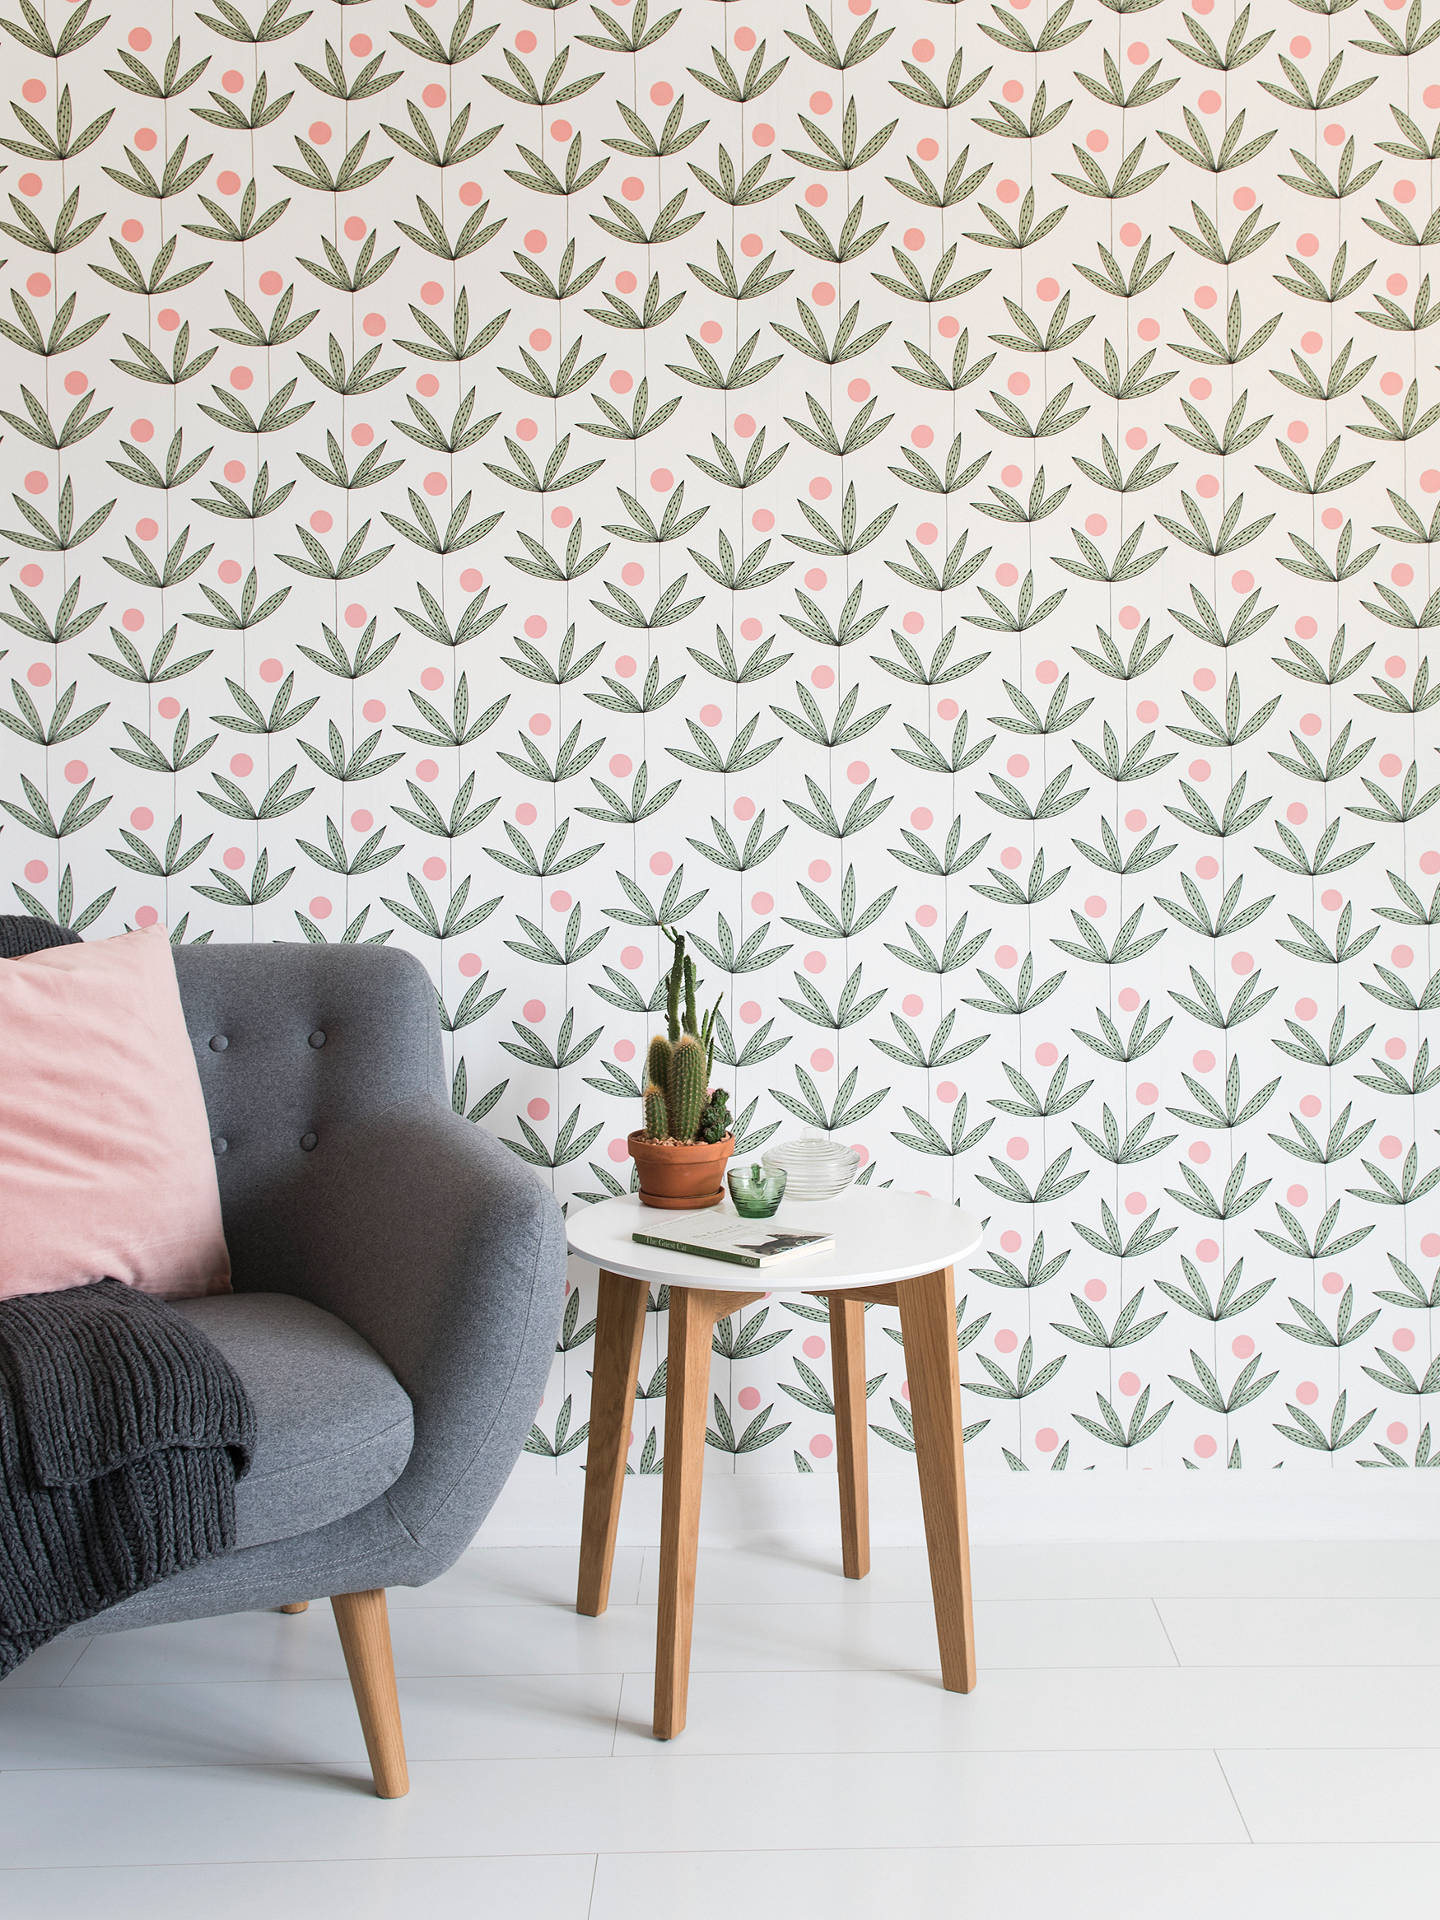 9. Bold Printed Wallpaper - Bold is better this year and this isn't just limited to colour. Searches for bold wallpaper have increased by 401% year on year, meaning there's never been a better time to make a statement with bright colourful prints. MissPrint will always be our go-to for bold wallpaper; they are the perfect combination of colour and pattern.